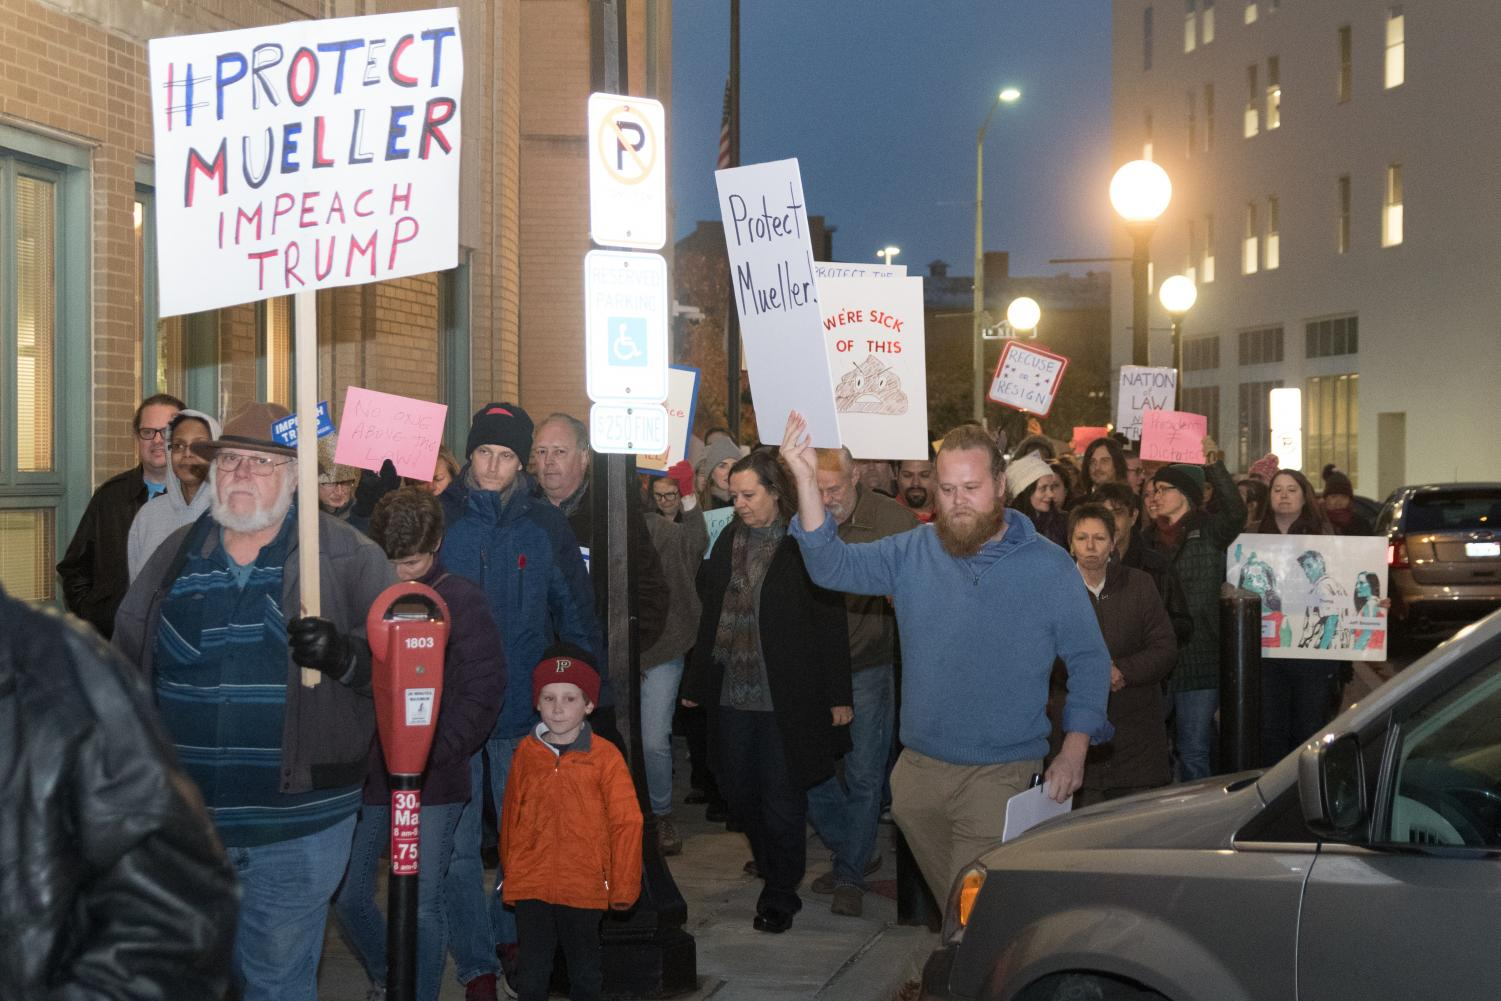 Protesters march through downtown Champaign on Thursday in response to President Trump's decision to replace Rod Rosenstein with Acting Attorney General Matt Whitaker as the head of the Mueller probe.  The Nobody is Above the Law protest was previously organized so that if President Trump were to replace the oversight of the special counsel, a rapid response series of protests would take place the next day.